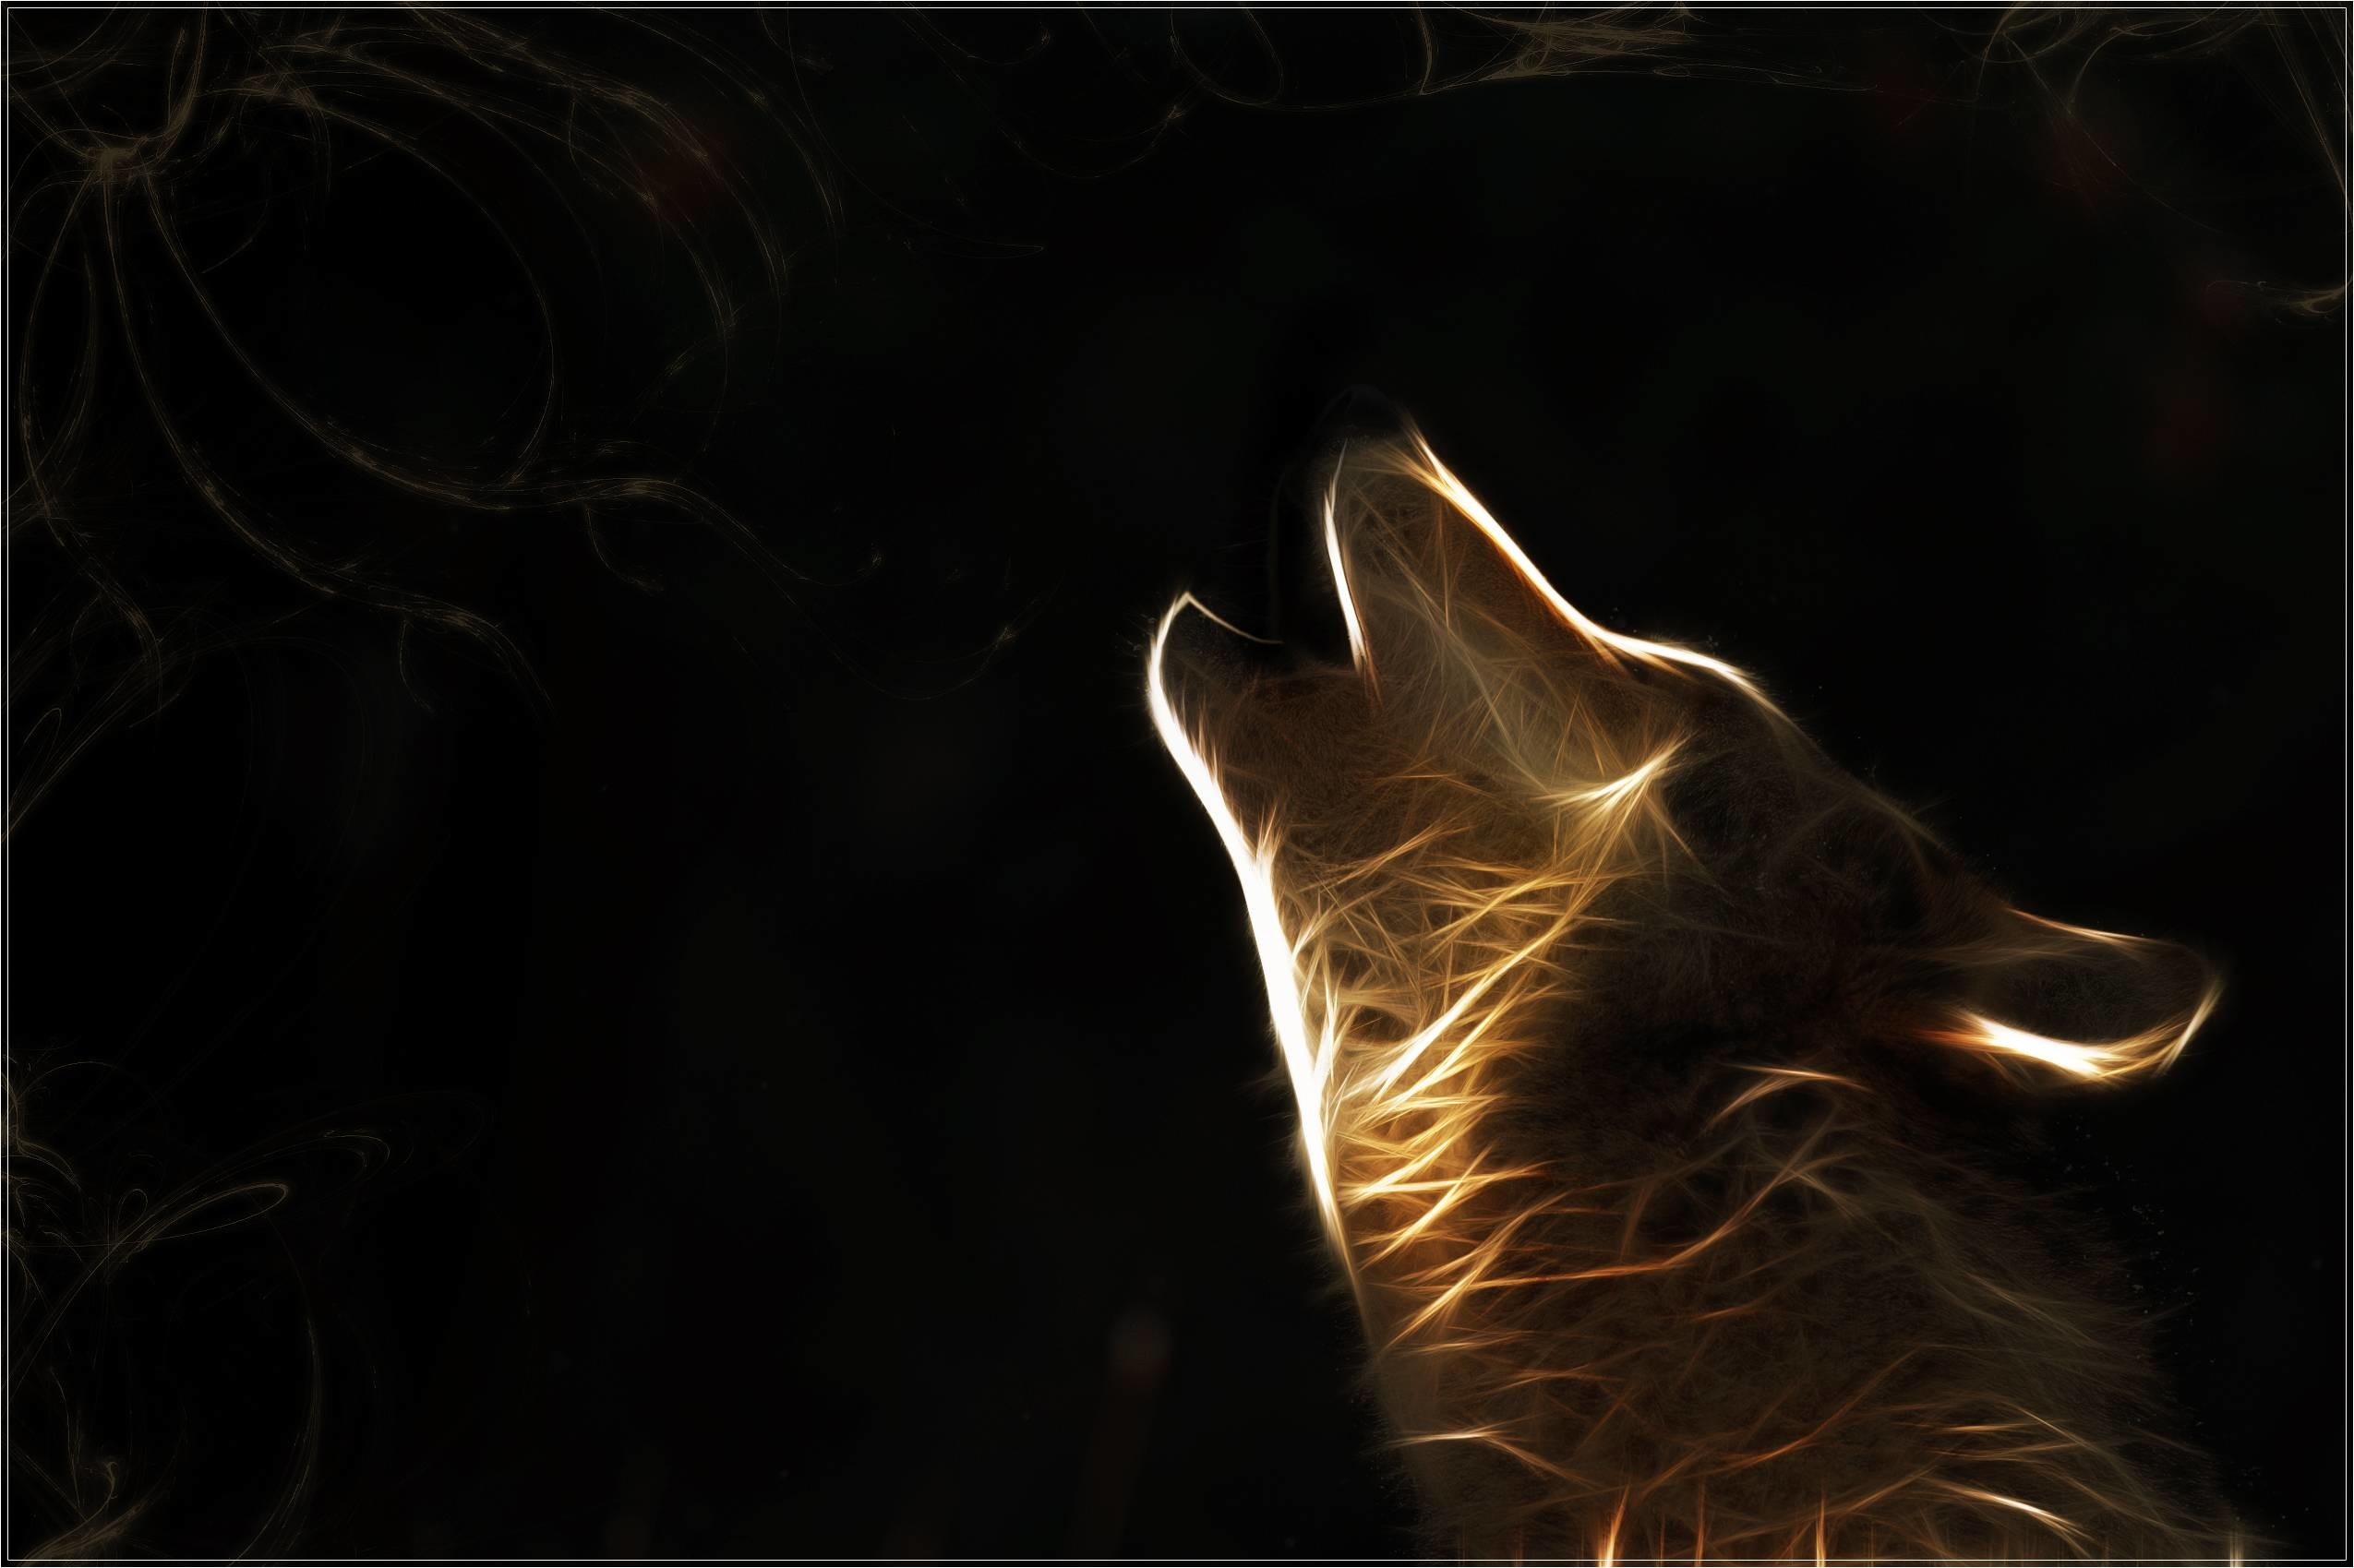 2550x1699 Wallpaper HD Wolf 18 16527 Wallpaper and Background .